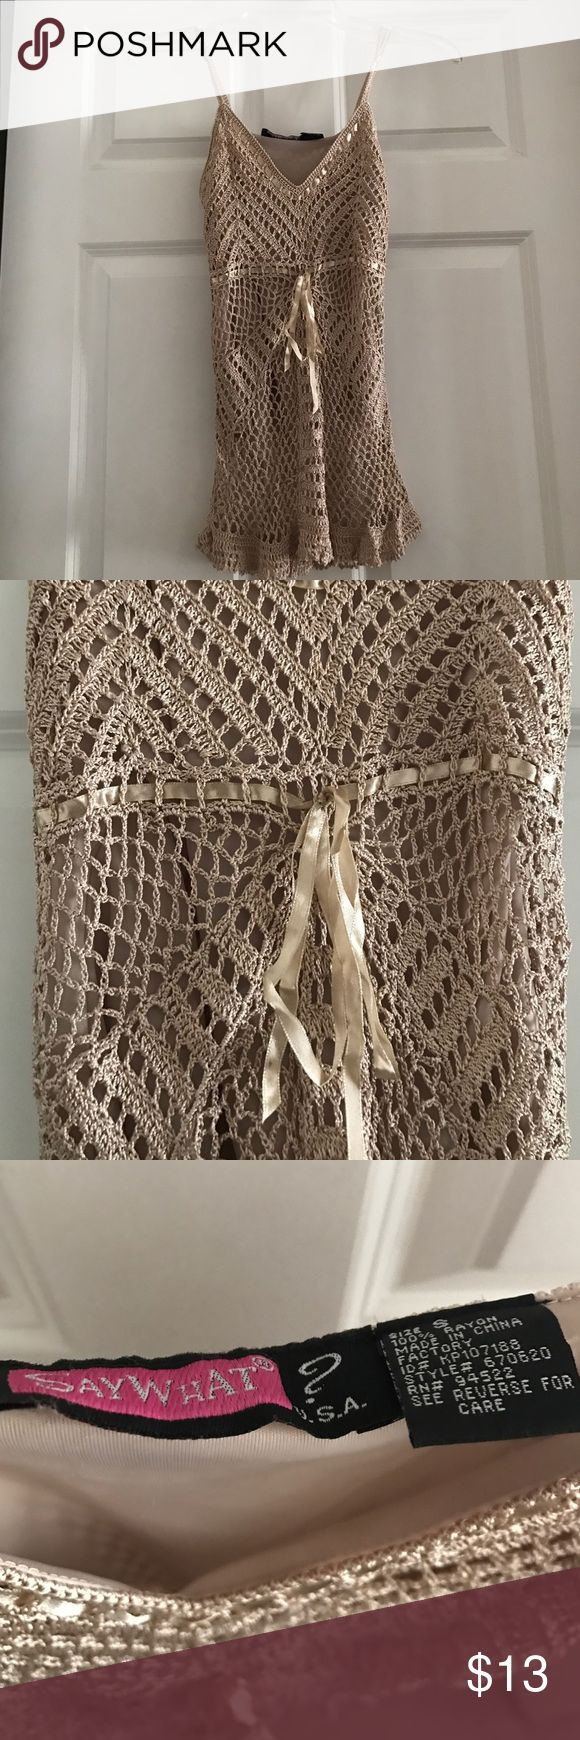 Light beige lace tank top Light beige lace tank, worn once. Say What? Tops Tank Tops